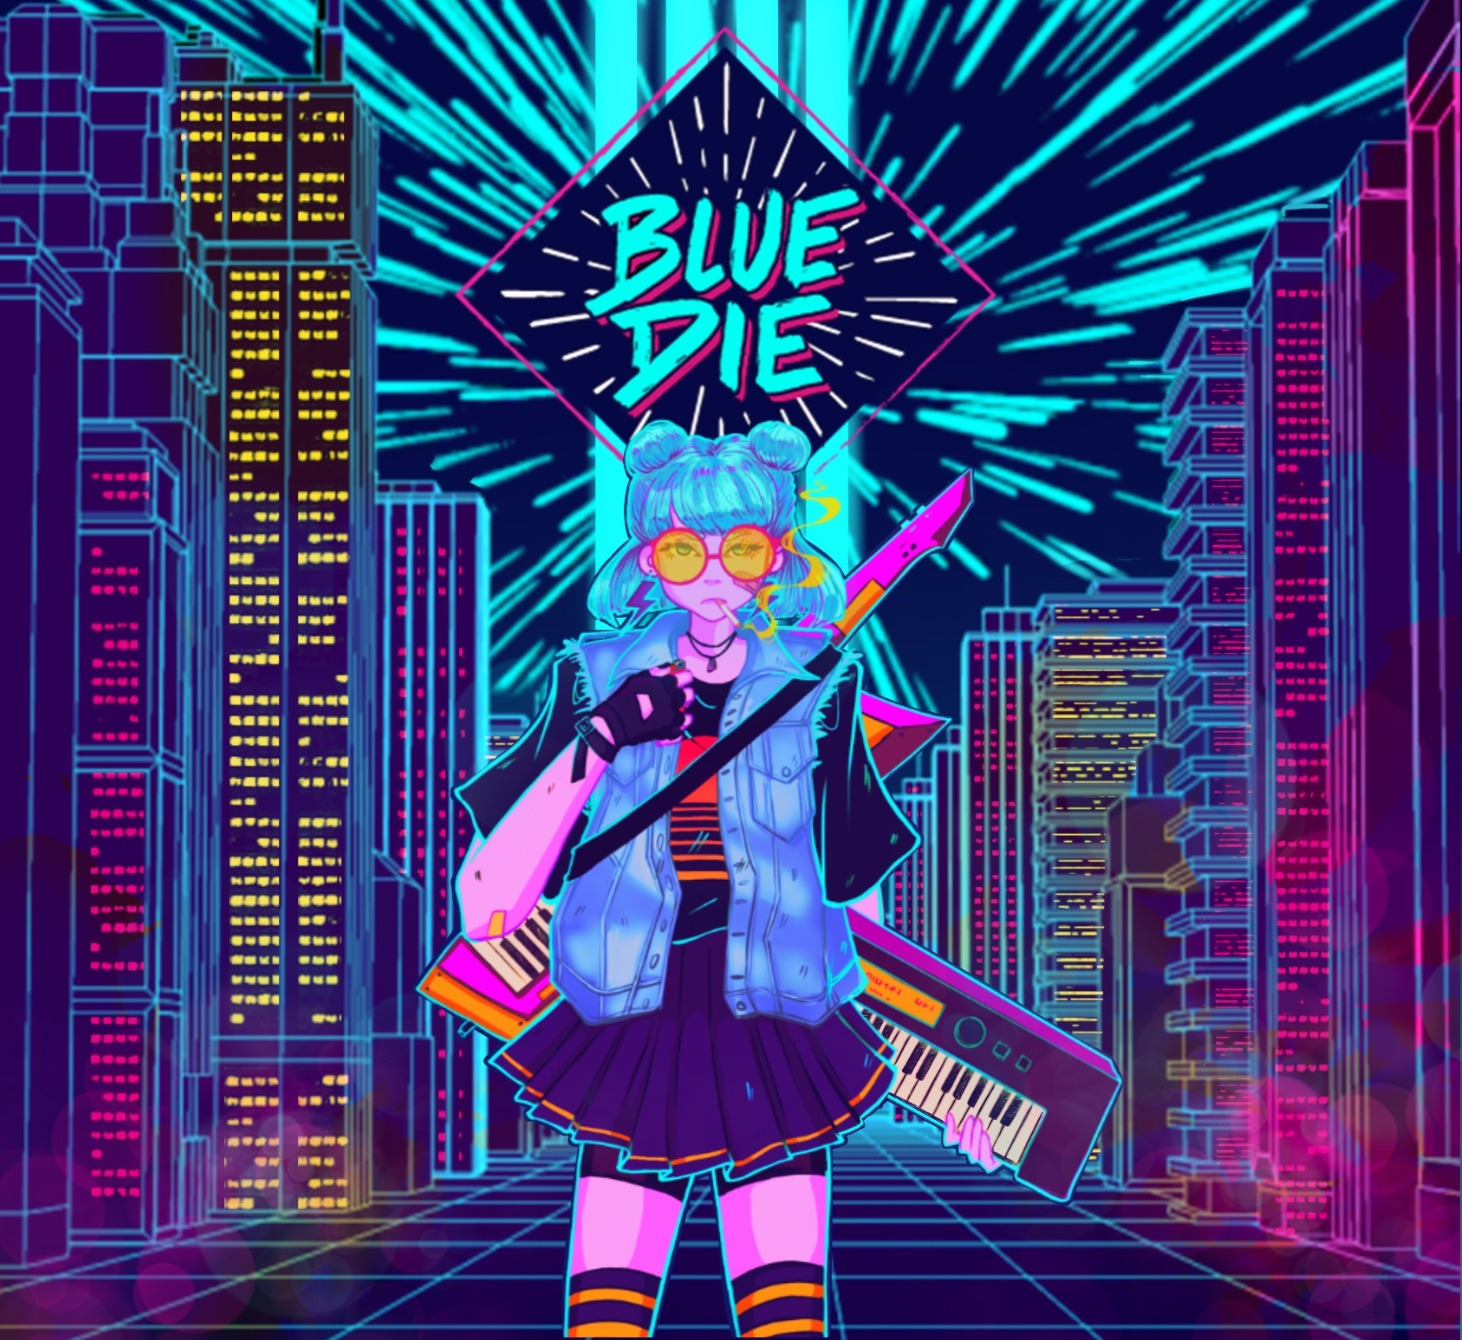 Blue Die Album Front Cover